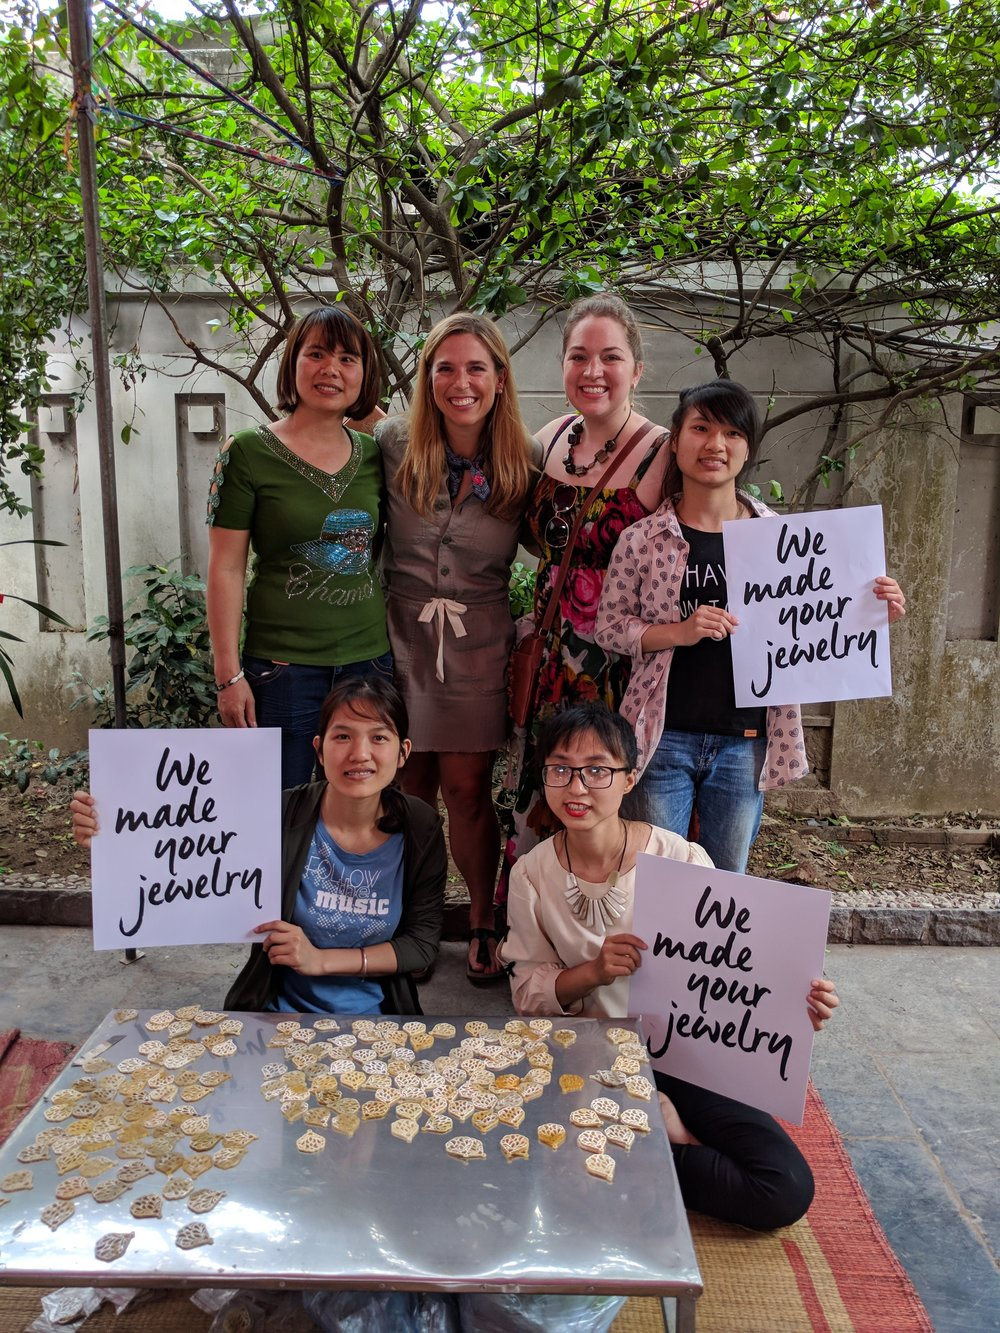 Lanh, Jessica Honegger (Noonday's founder), and I joined the women who performed a final check on these beauties.